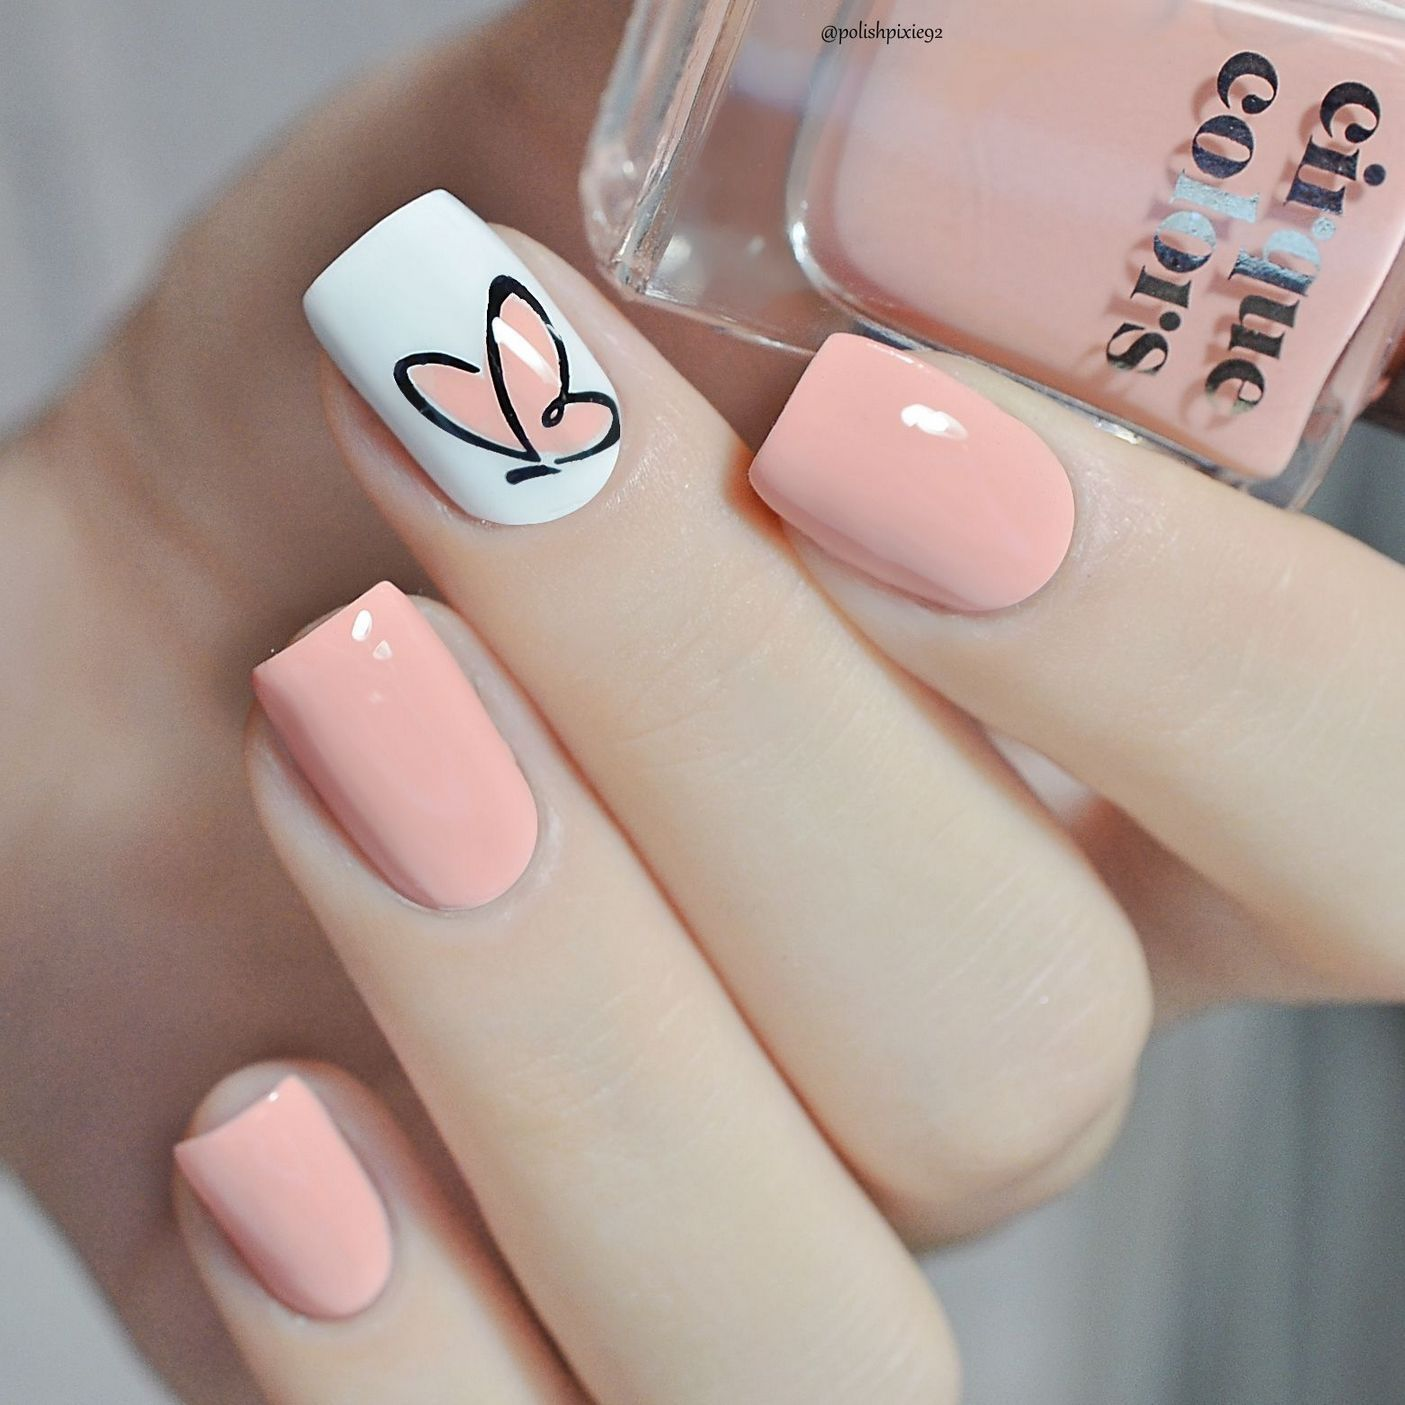 33 Simple And Easy Nail Art Design Idea You Can Do - klambeni.com